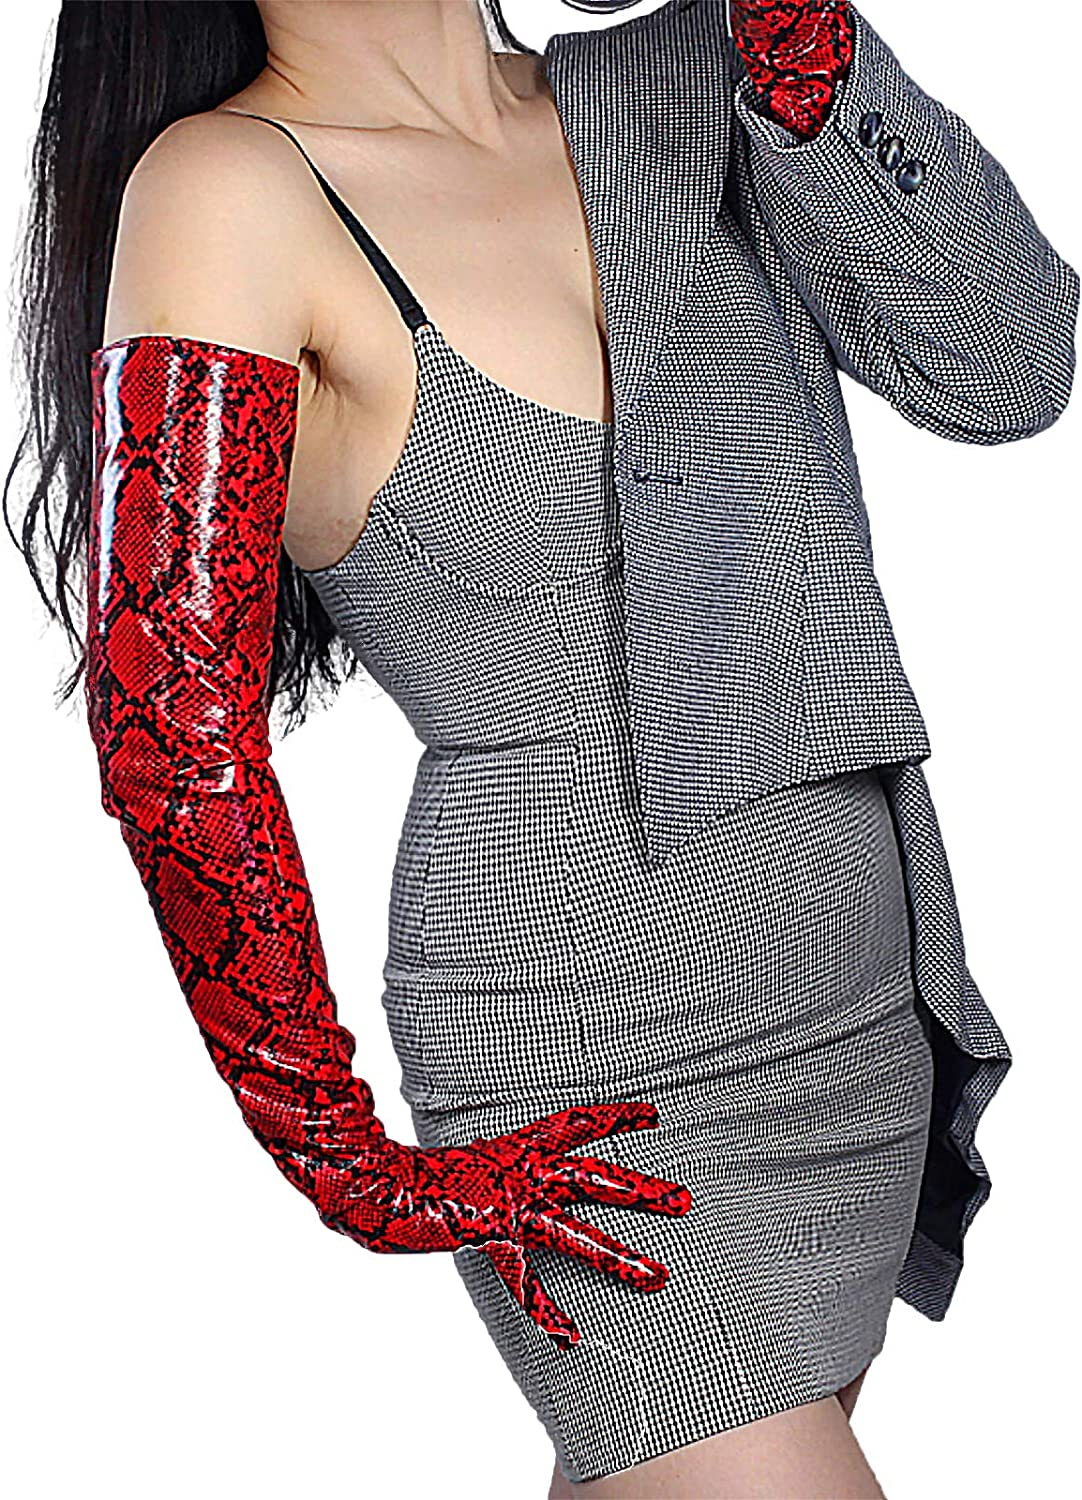 GooDay Women's Extra Long Leather Gloves Faux Patent PU Fashion Shine Red Snakeskin Print 28 inches